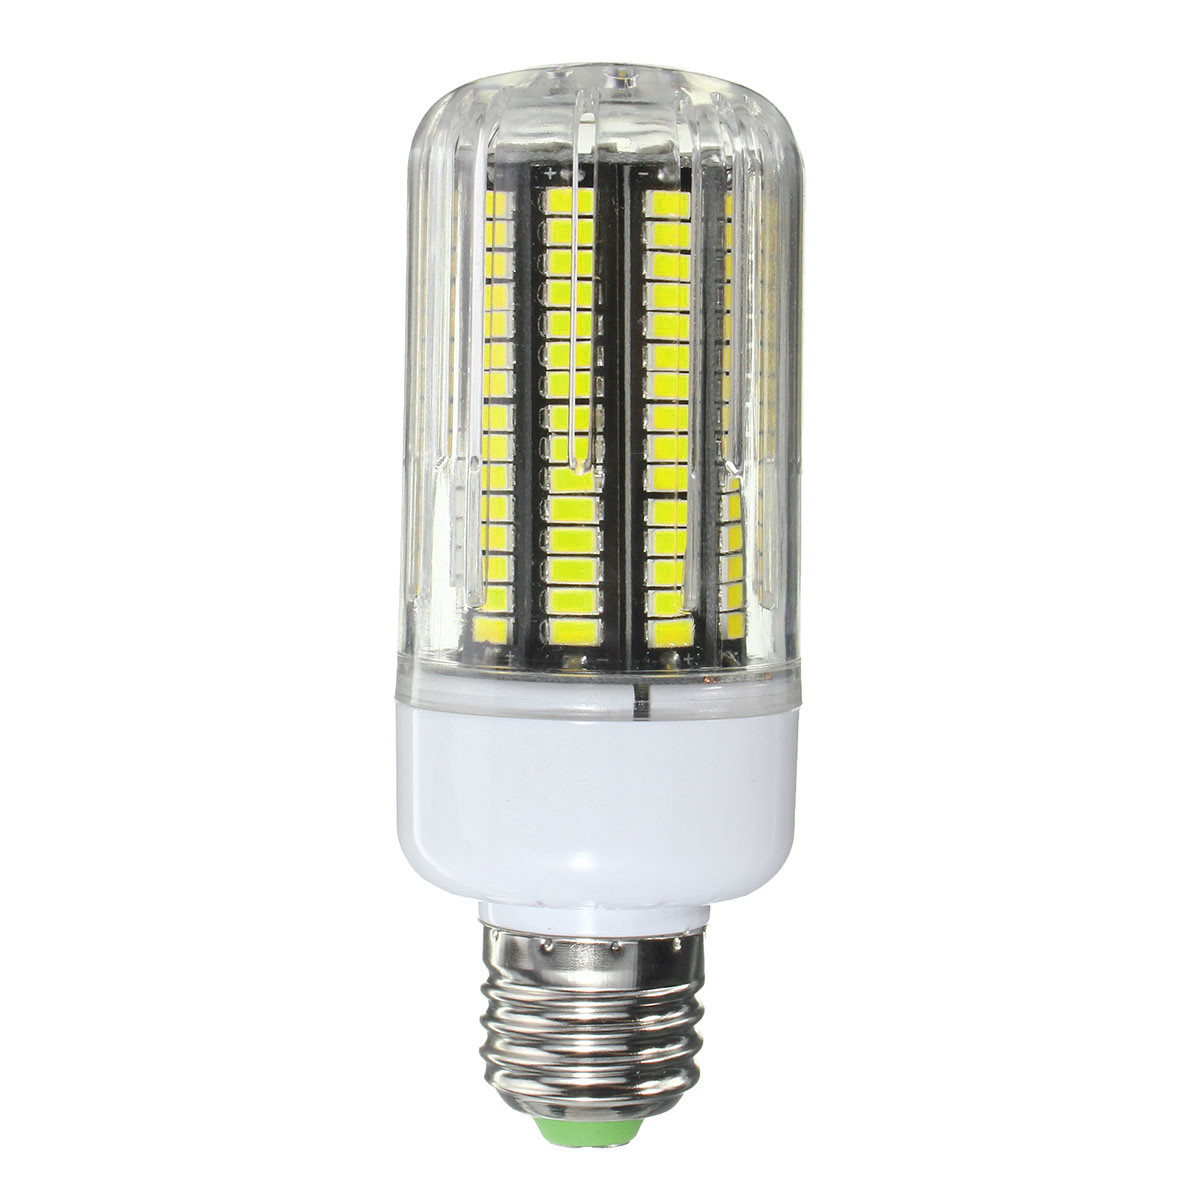 e27 e14 e12 b22 15w 170 smd 5730 led 1200lm pure white warm white cover corn bulb ac110v alex nld. Black Bedroom Furniture Sets. Home Design Ideas